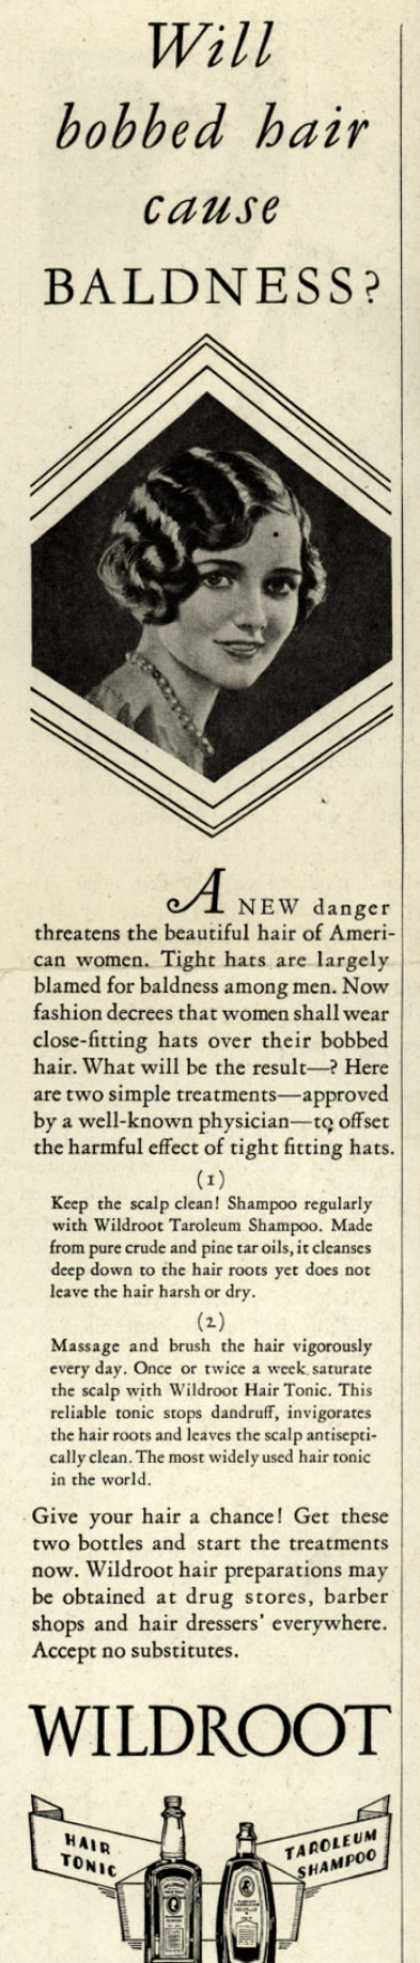 Wildroot Company's Wildroot Hair Preparations – Will bobbed hair caused Baldness? (1928)